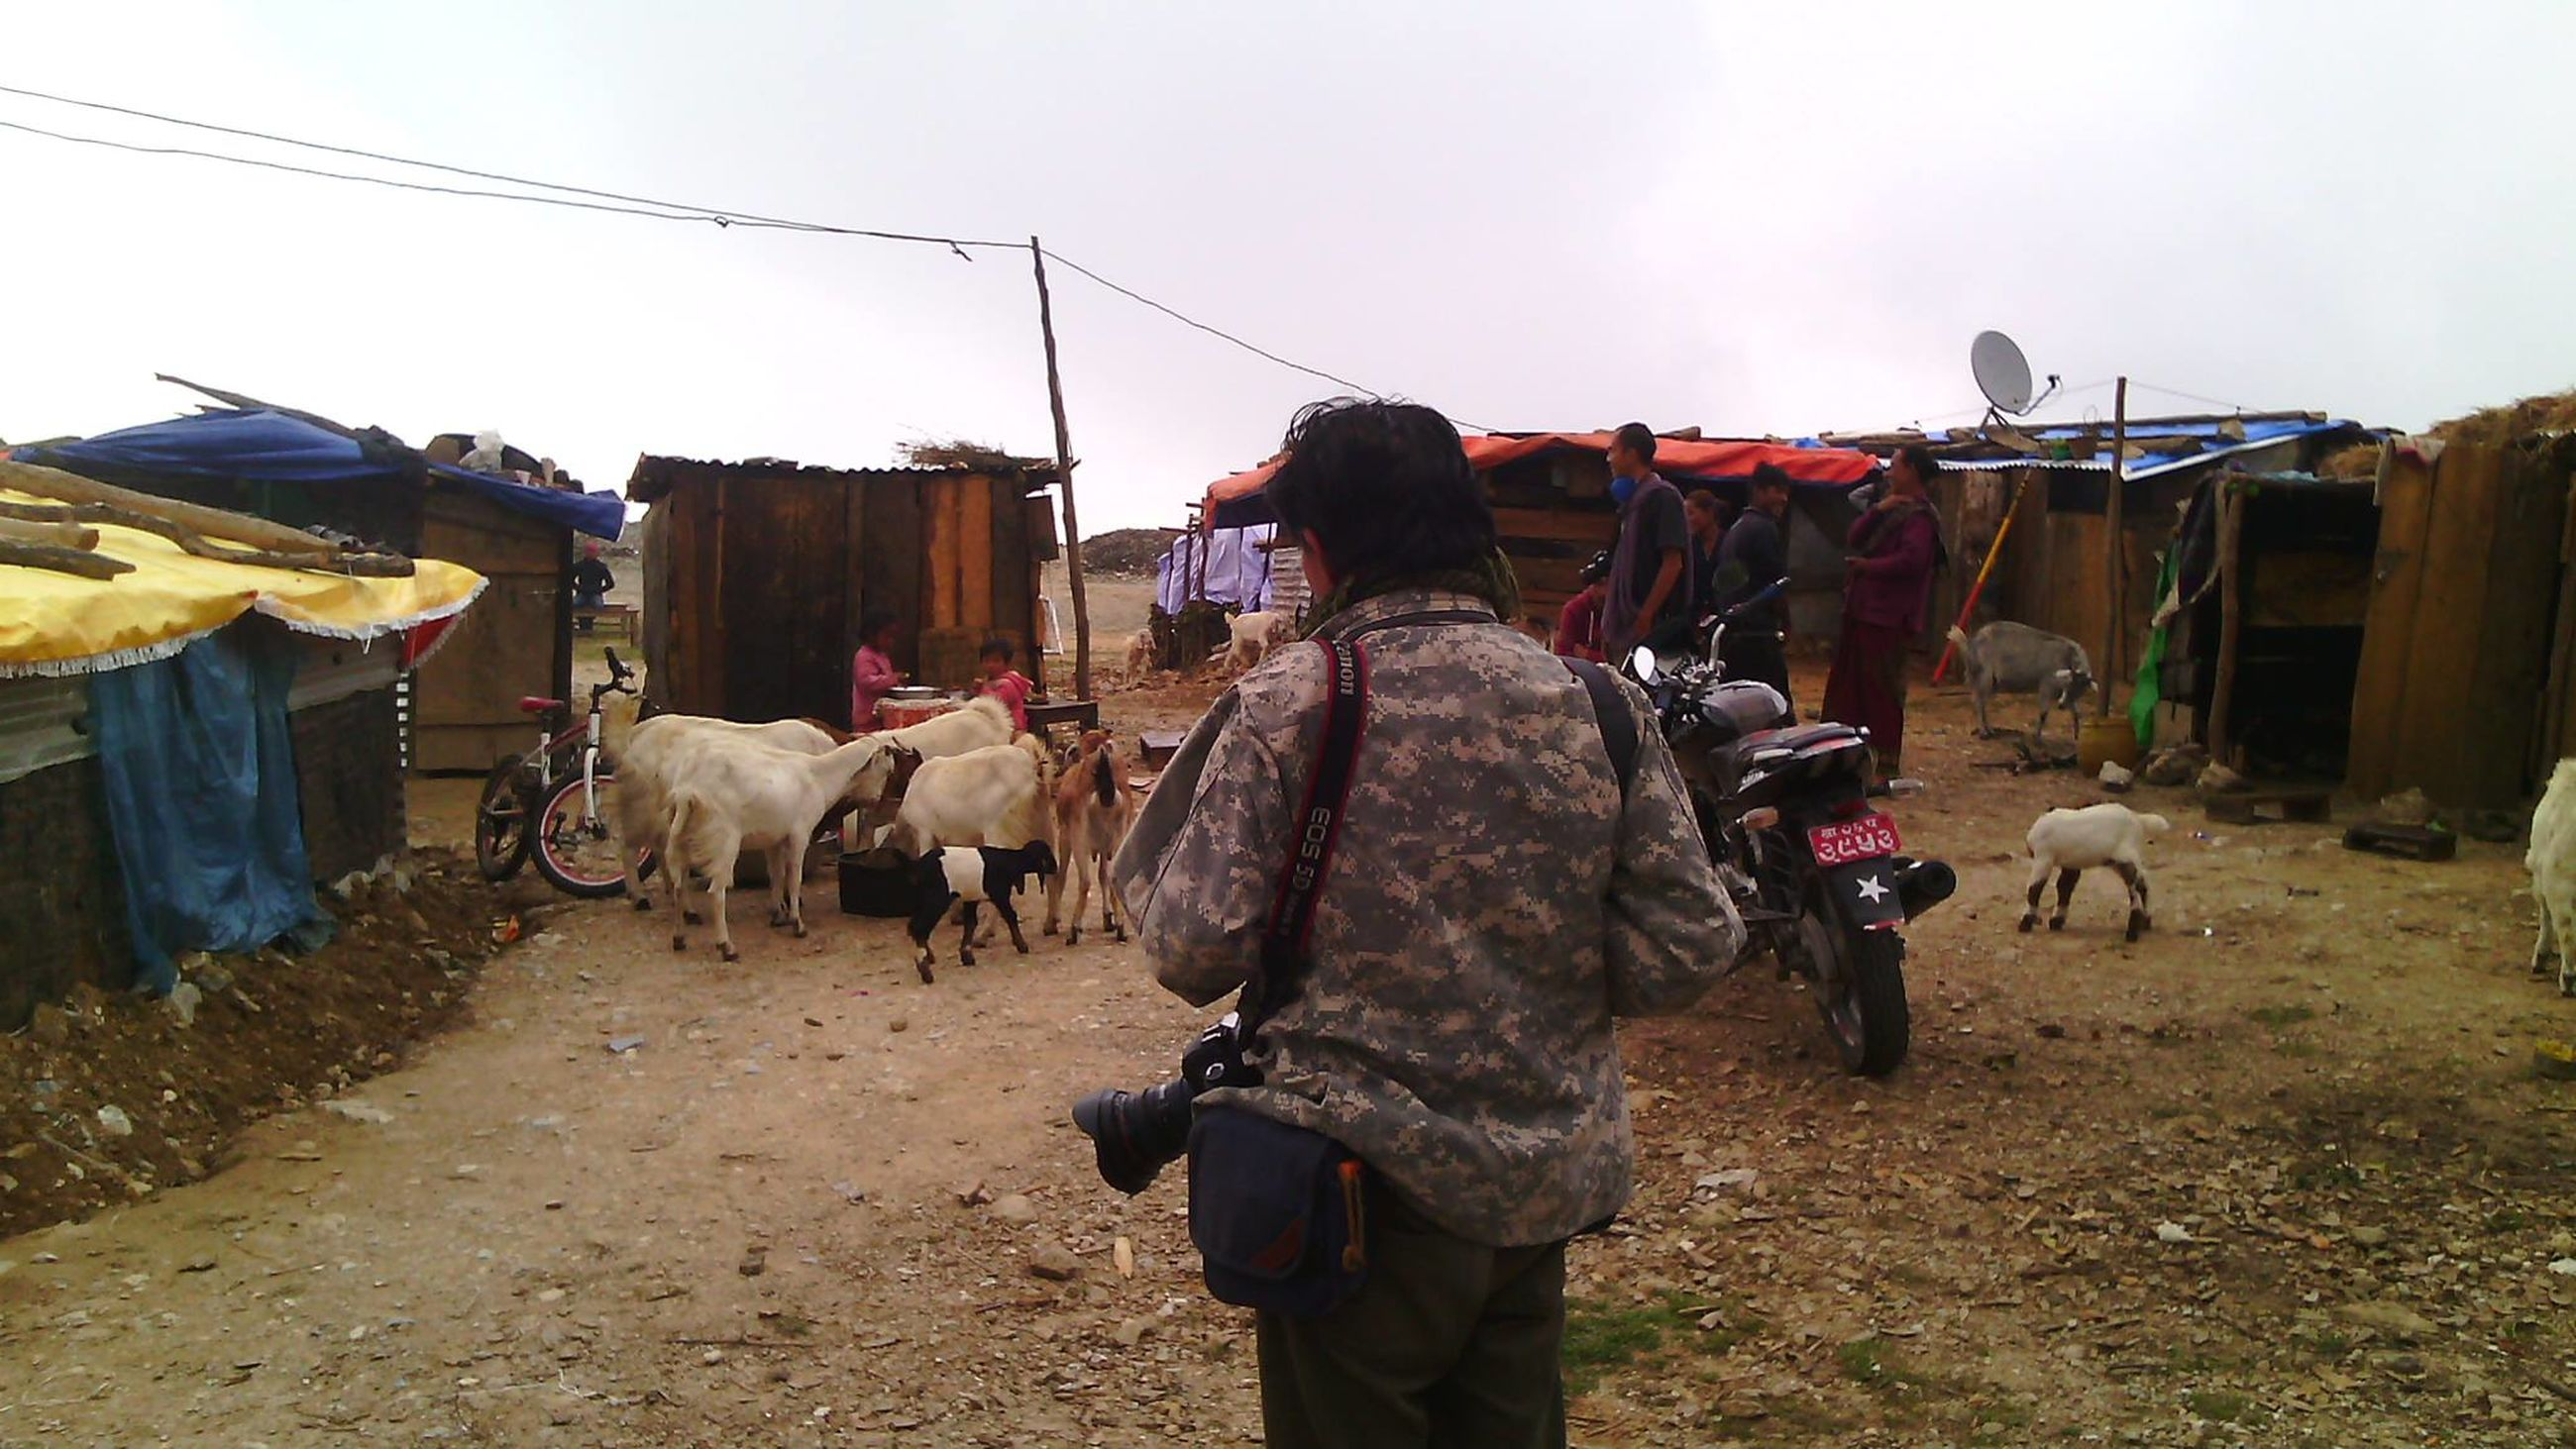 domestic animals, pets, domestic, mammal, livestock, real people, sky, nature, vertebrate, day, group of animals, walking, men, people, cattle, domestic cattle, rear view, clothing, outdoors, herbivorous